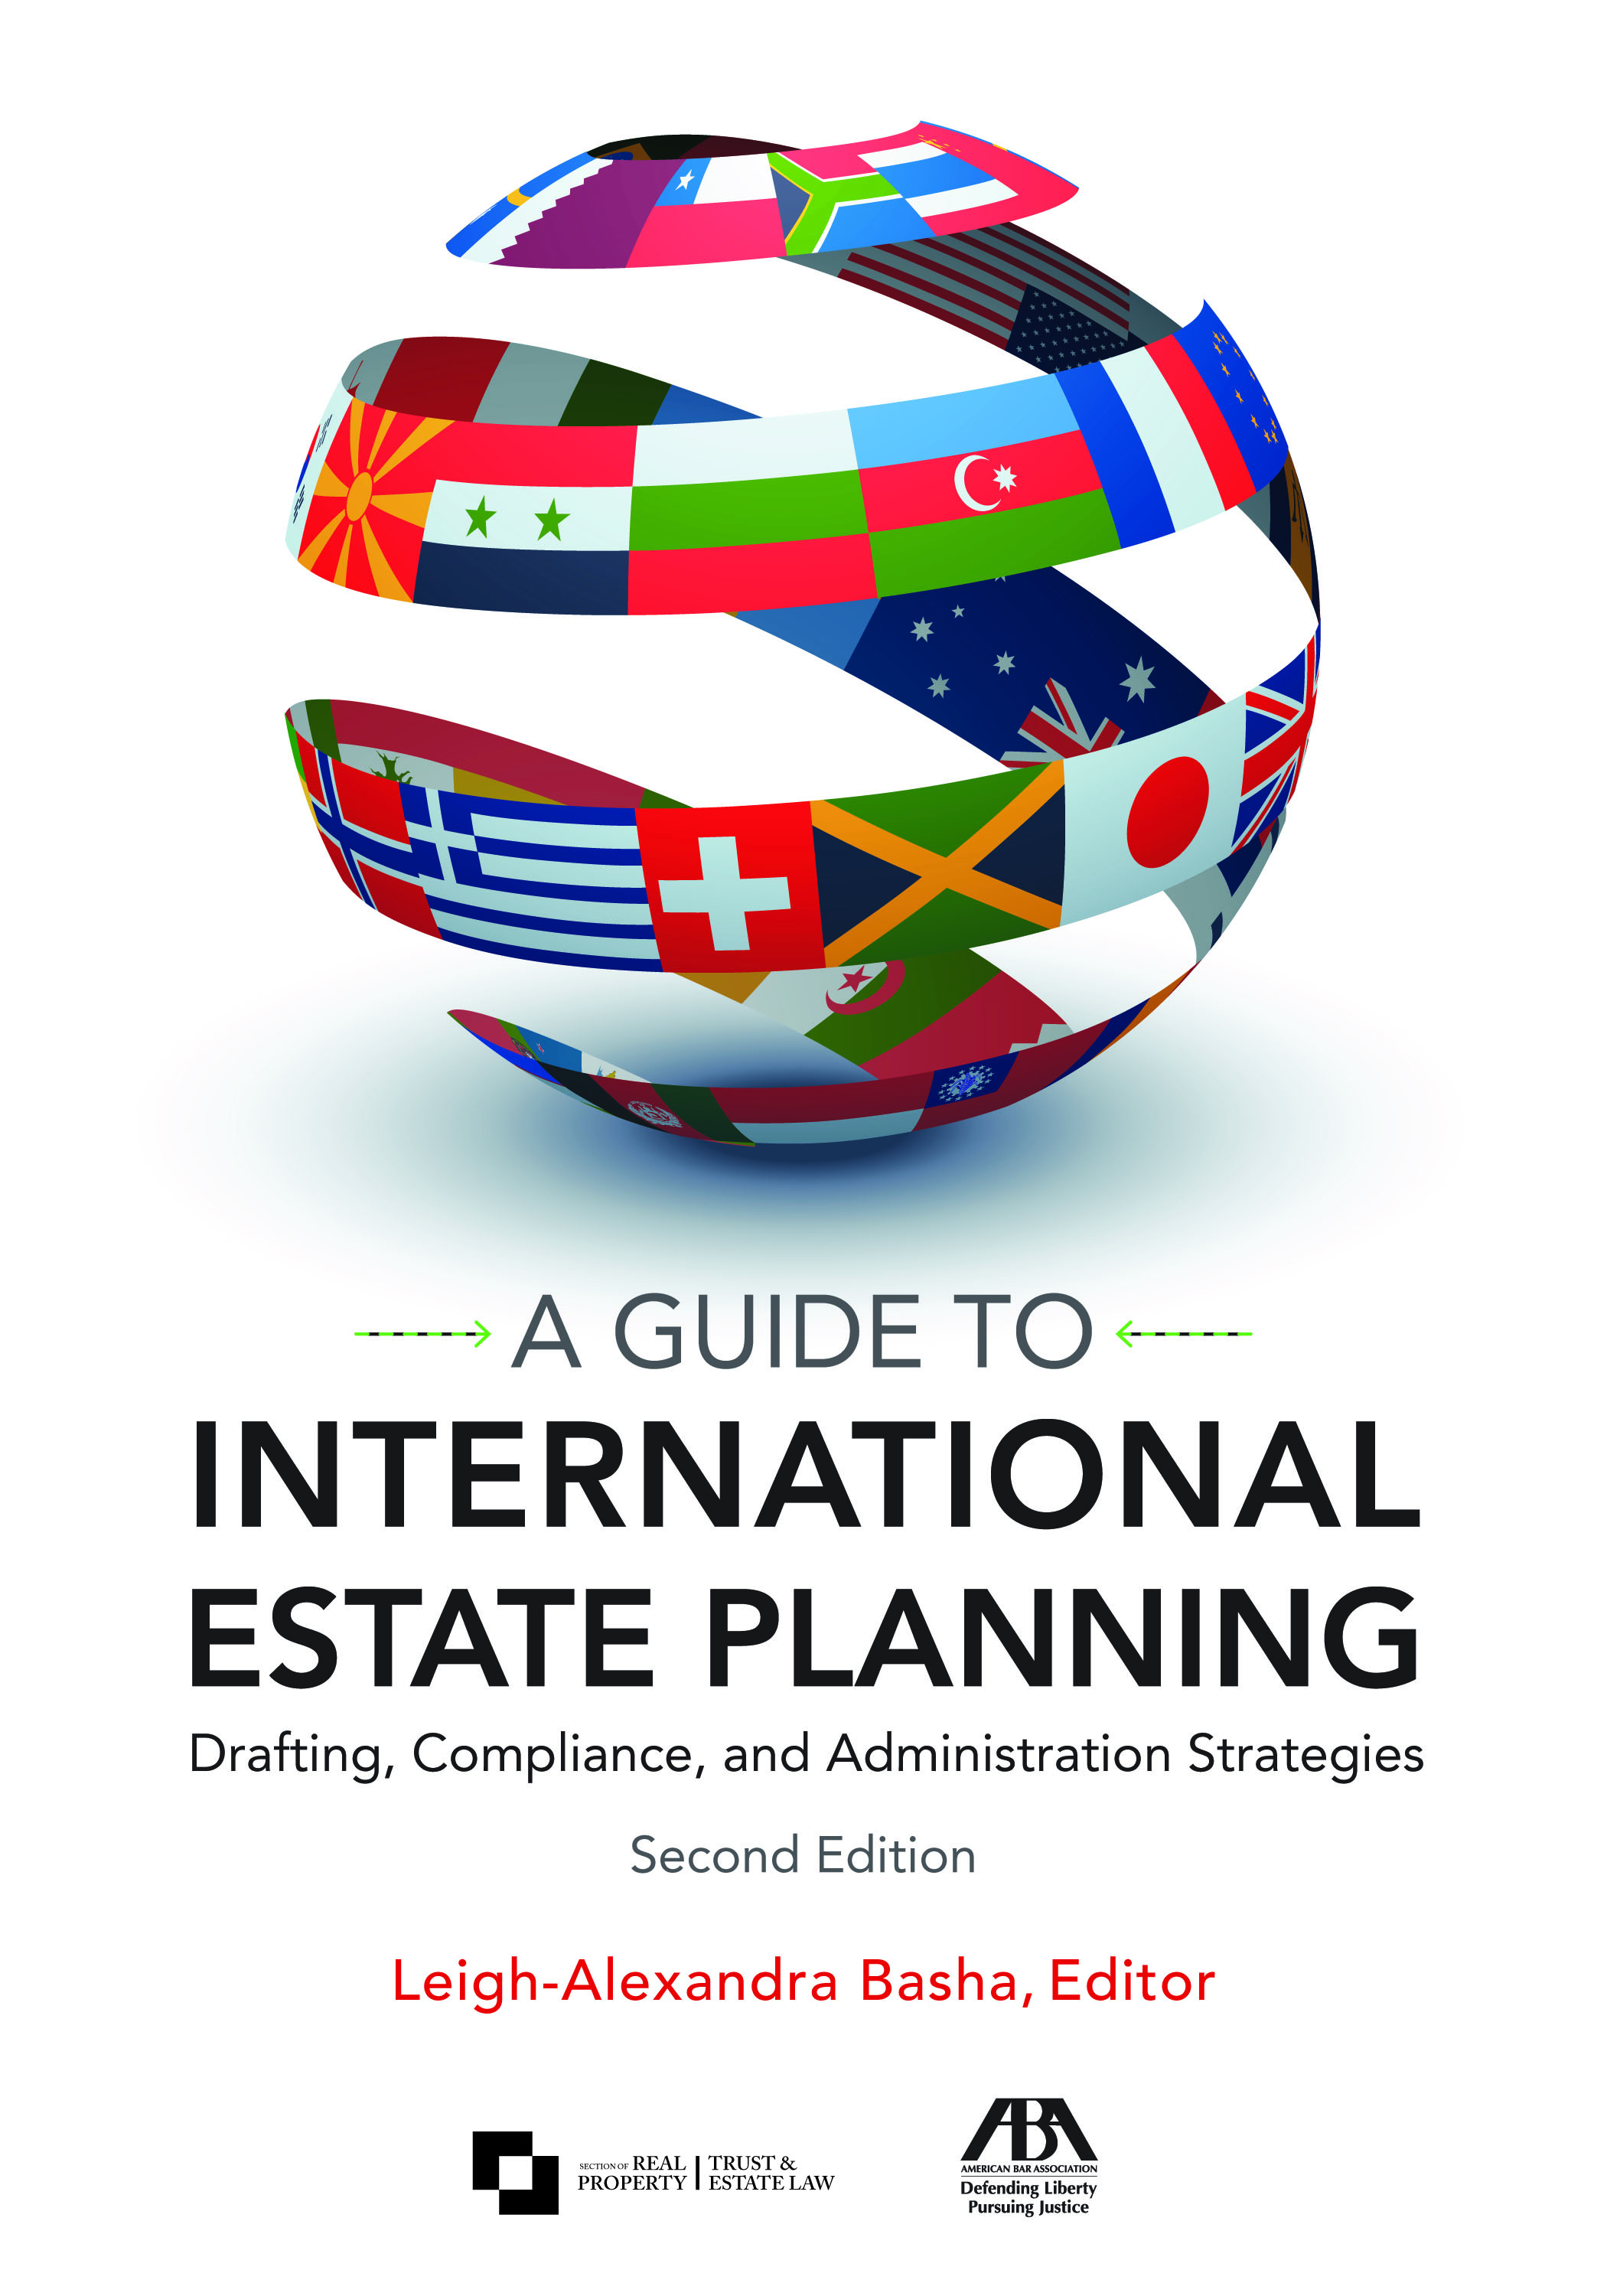 A Guide to International Estate Planning: Drafting, Compliance, and Administration Strategies, Second Edition